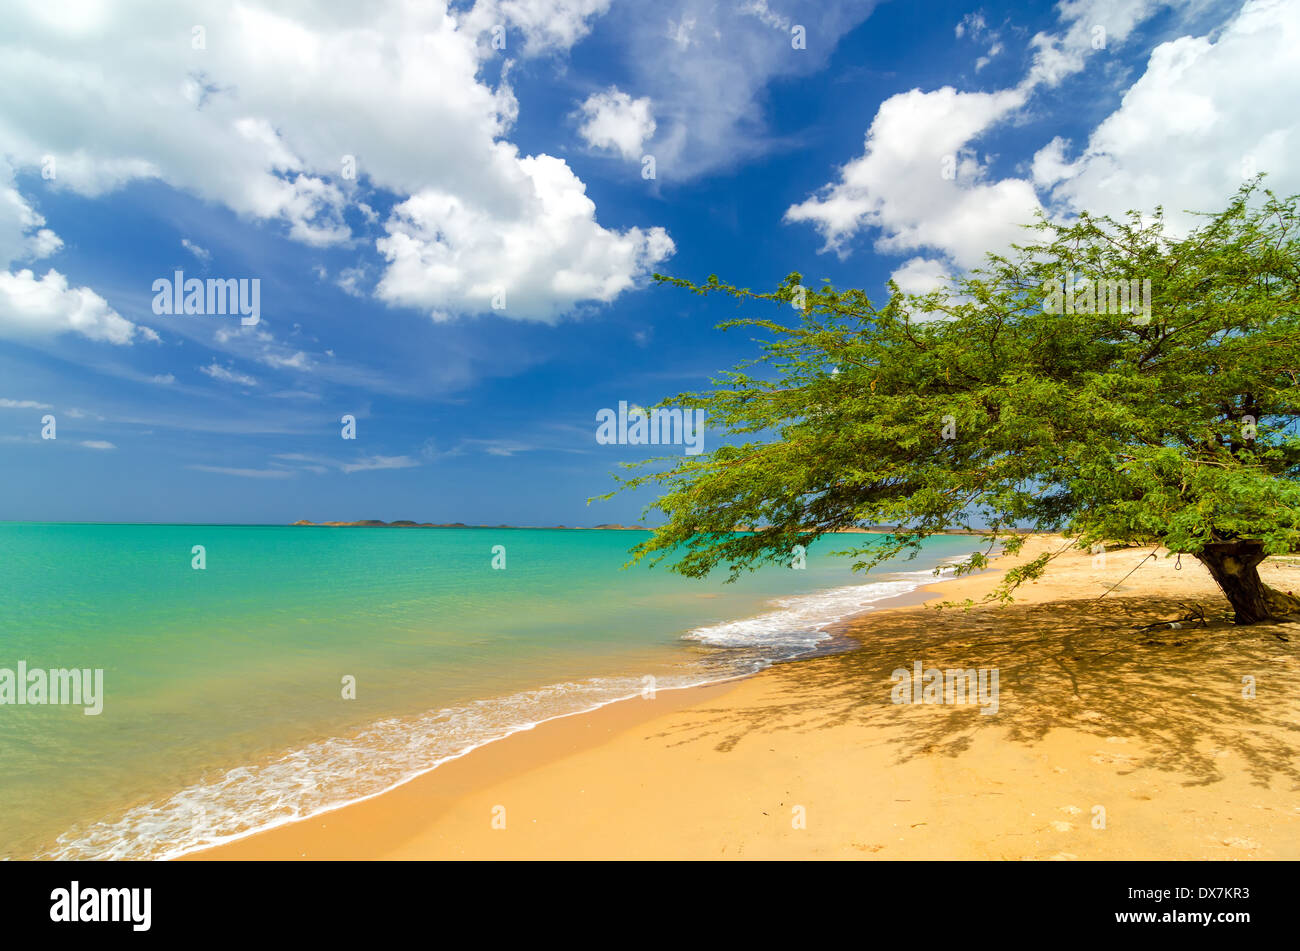 Deserted tropical beach in Pusheo in La Guajira, Colombia with a single solitary tree - Stock Image